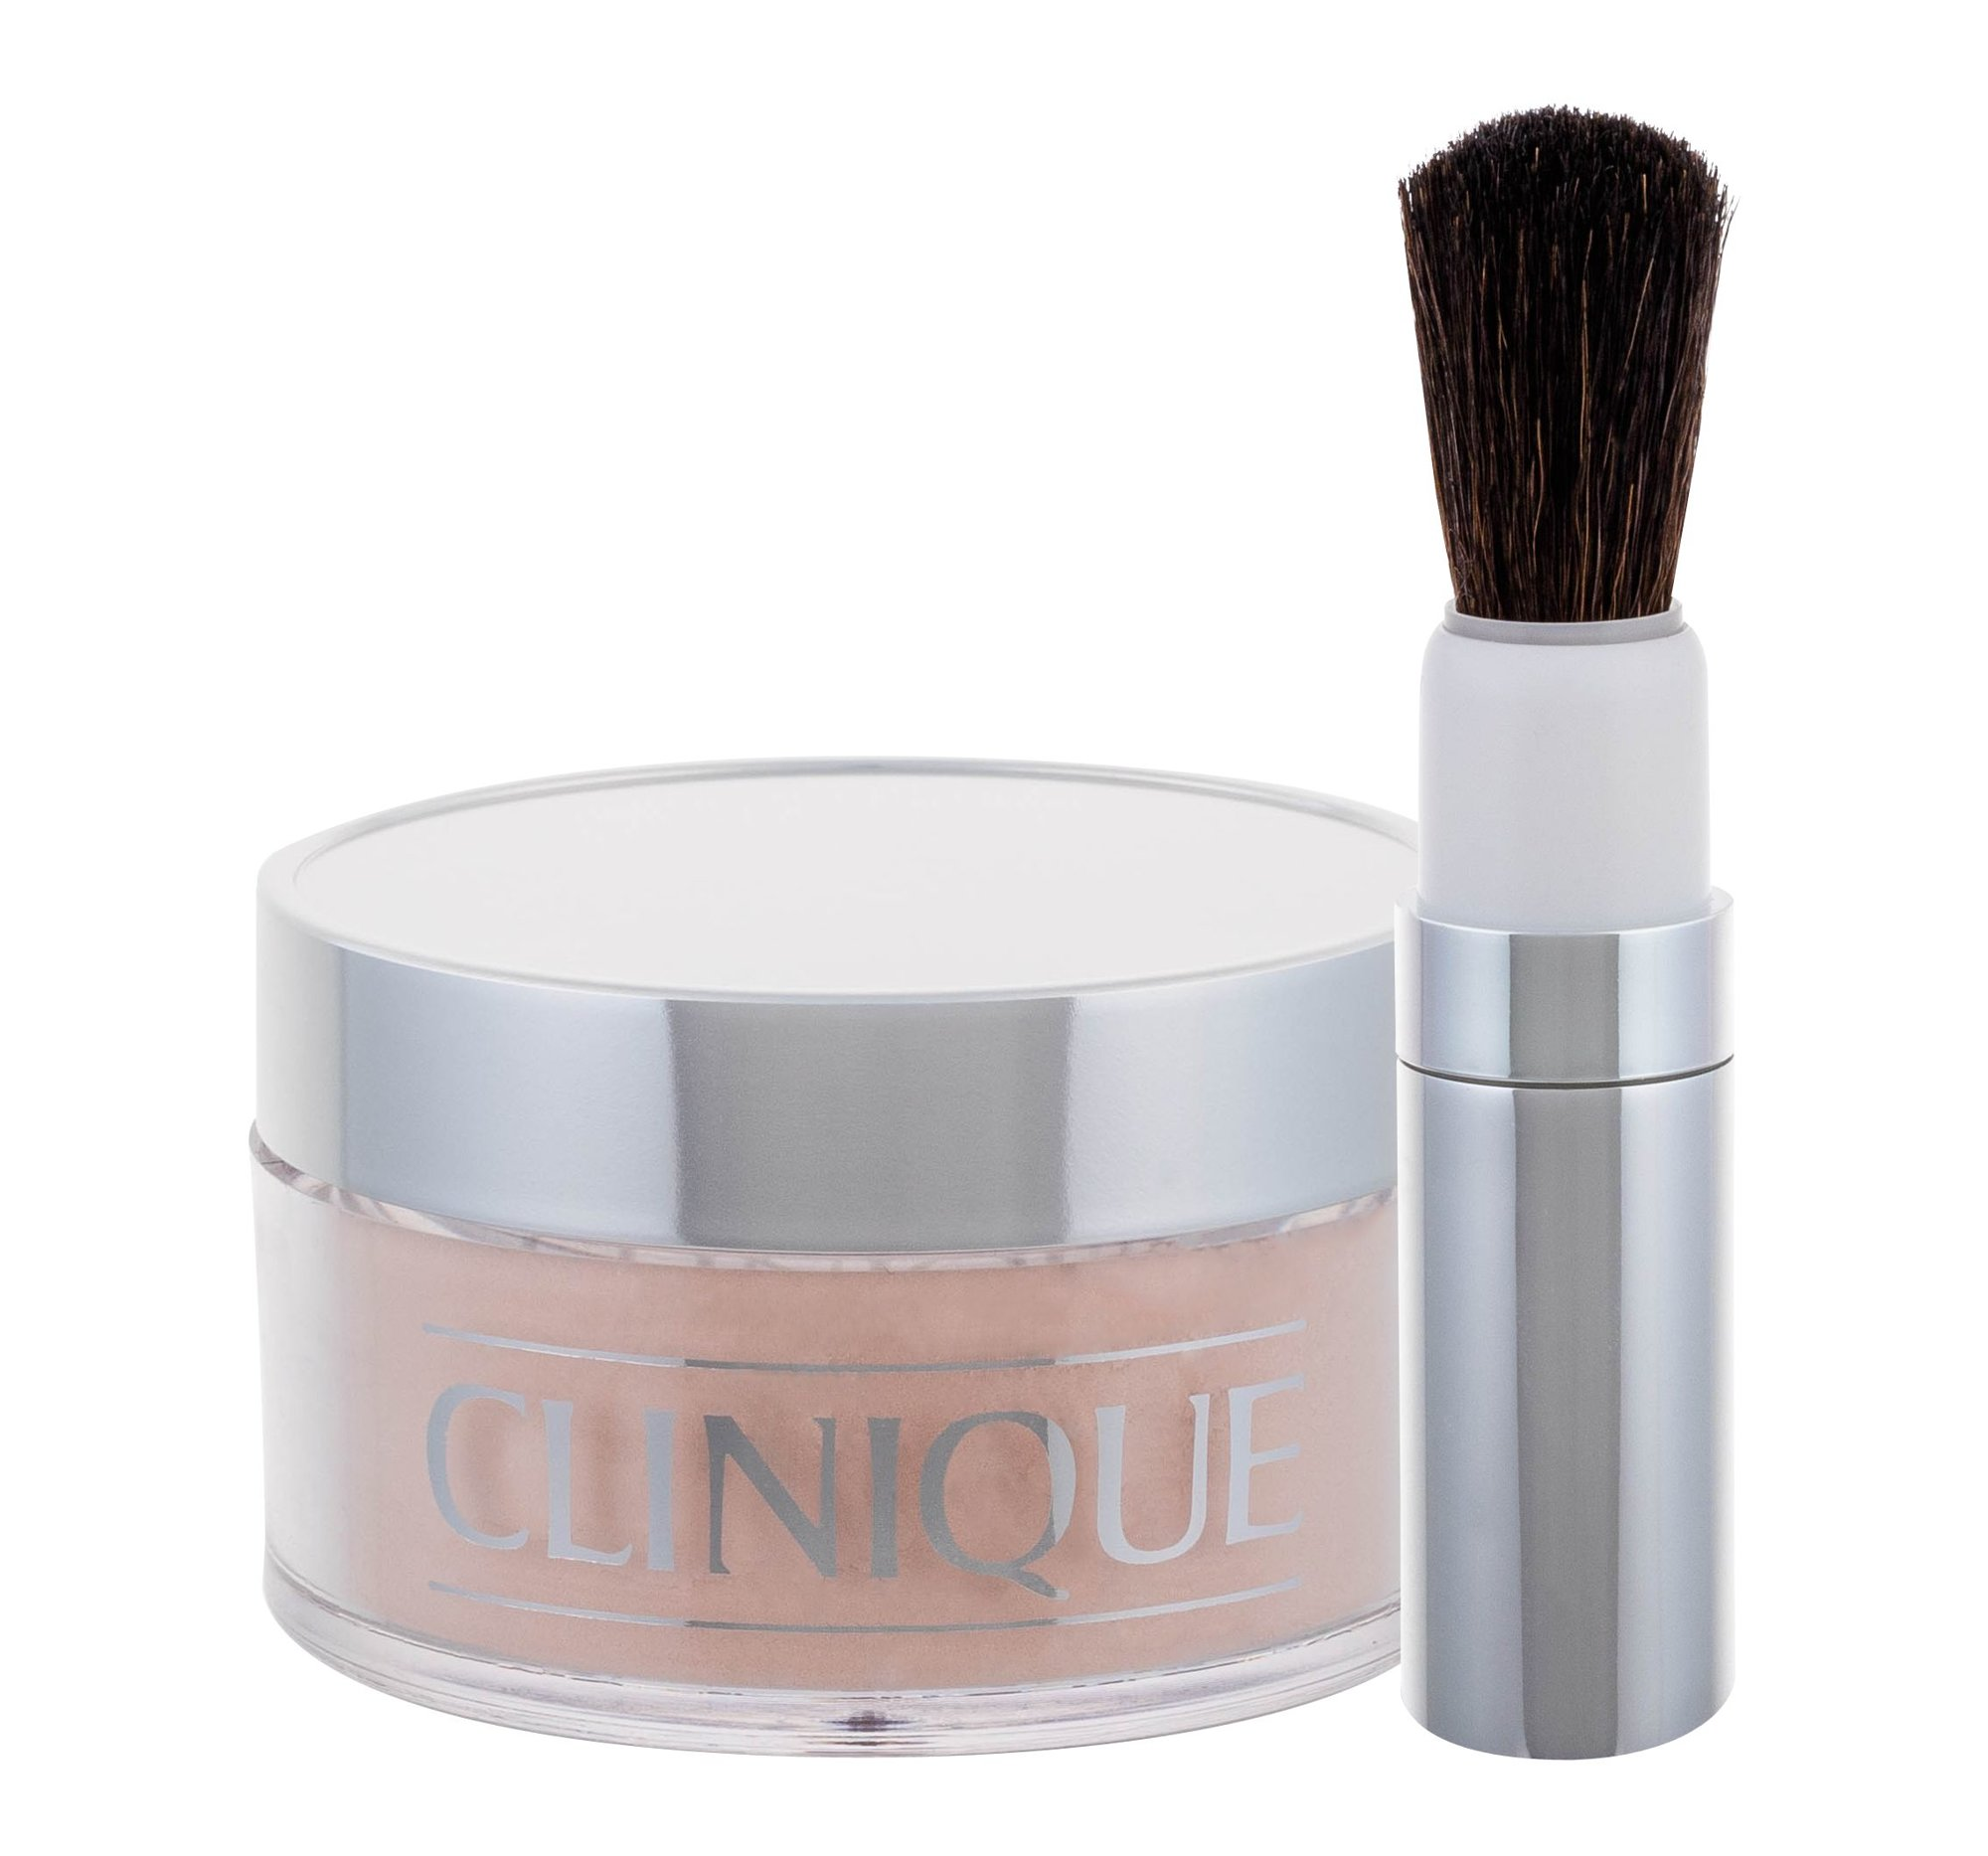 Clinique Blended Cosmetic 35ml 02 Transparency Face Powder And Brush